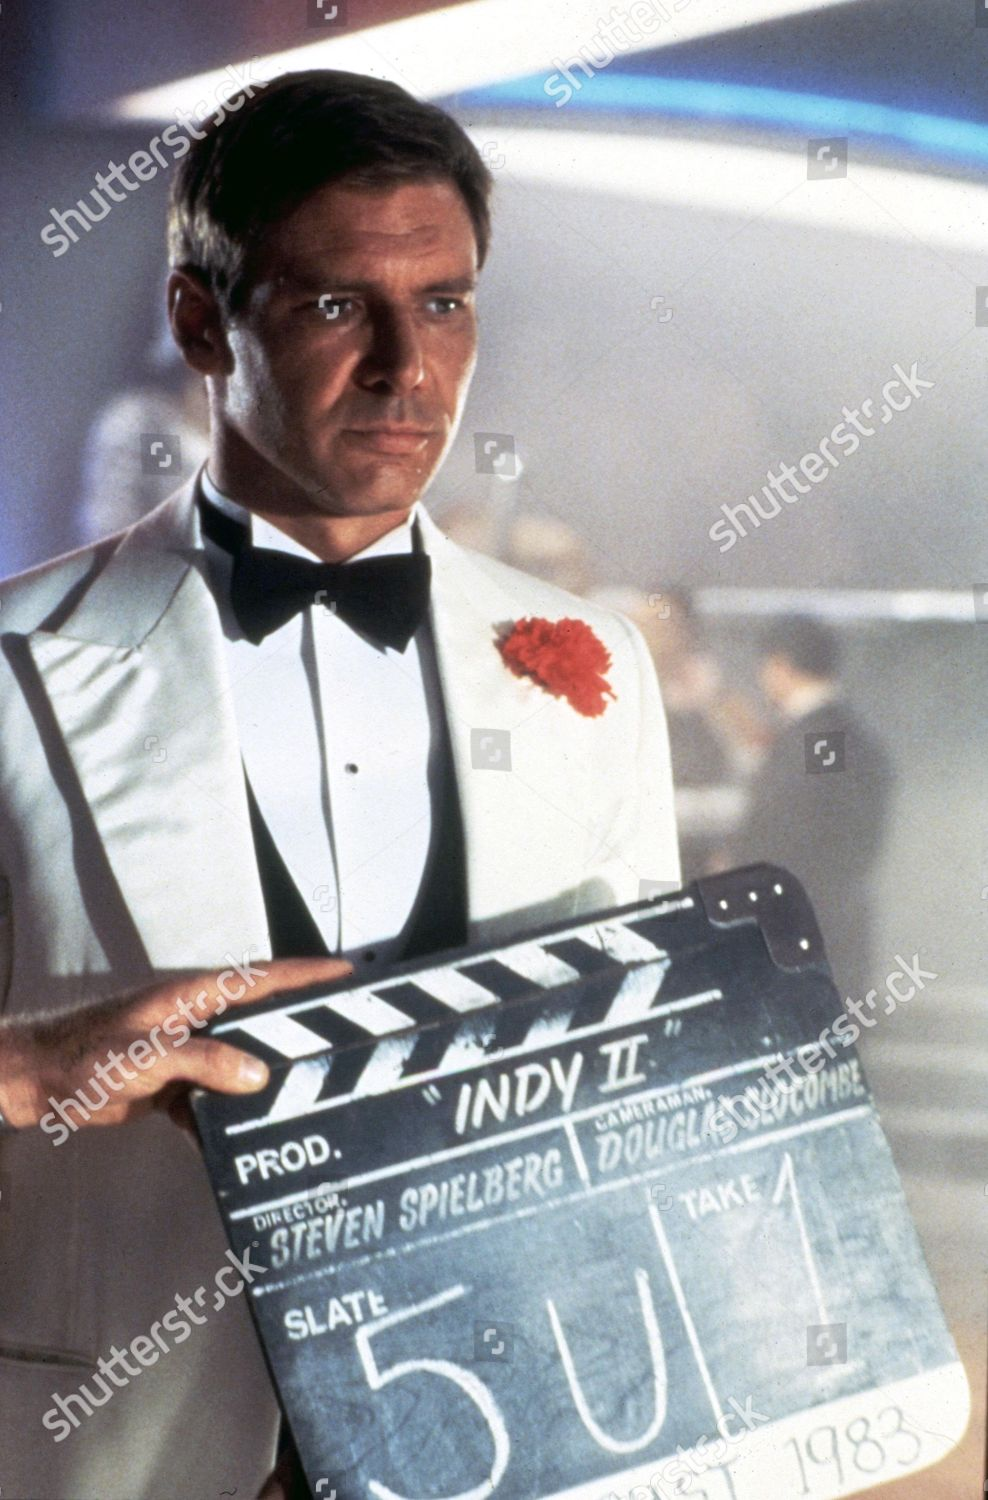 Harrison Ford Editorial Stock Photo - Stock Image   Shutterstock